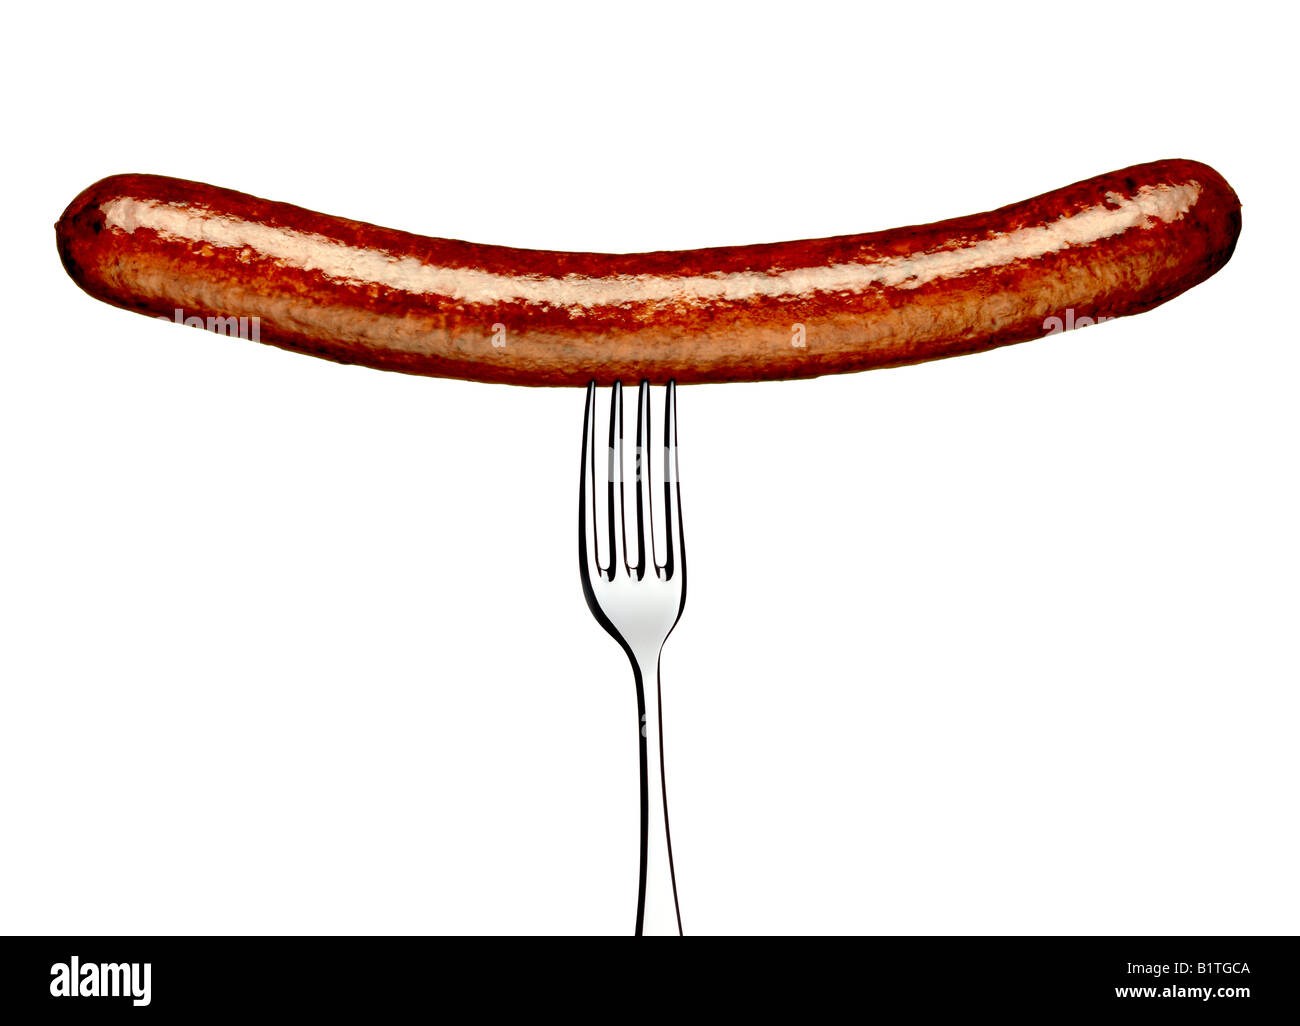 LONG PORK OR BEEF SAUSAGE ON A FORK - Stock Image